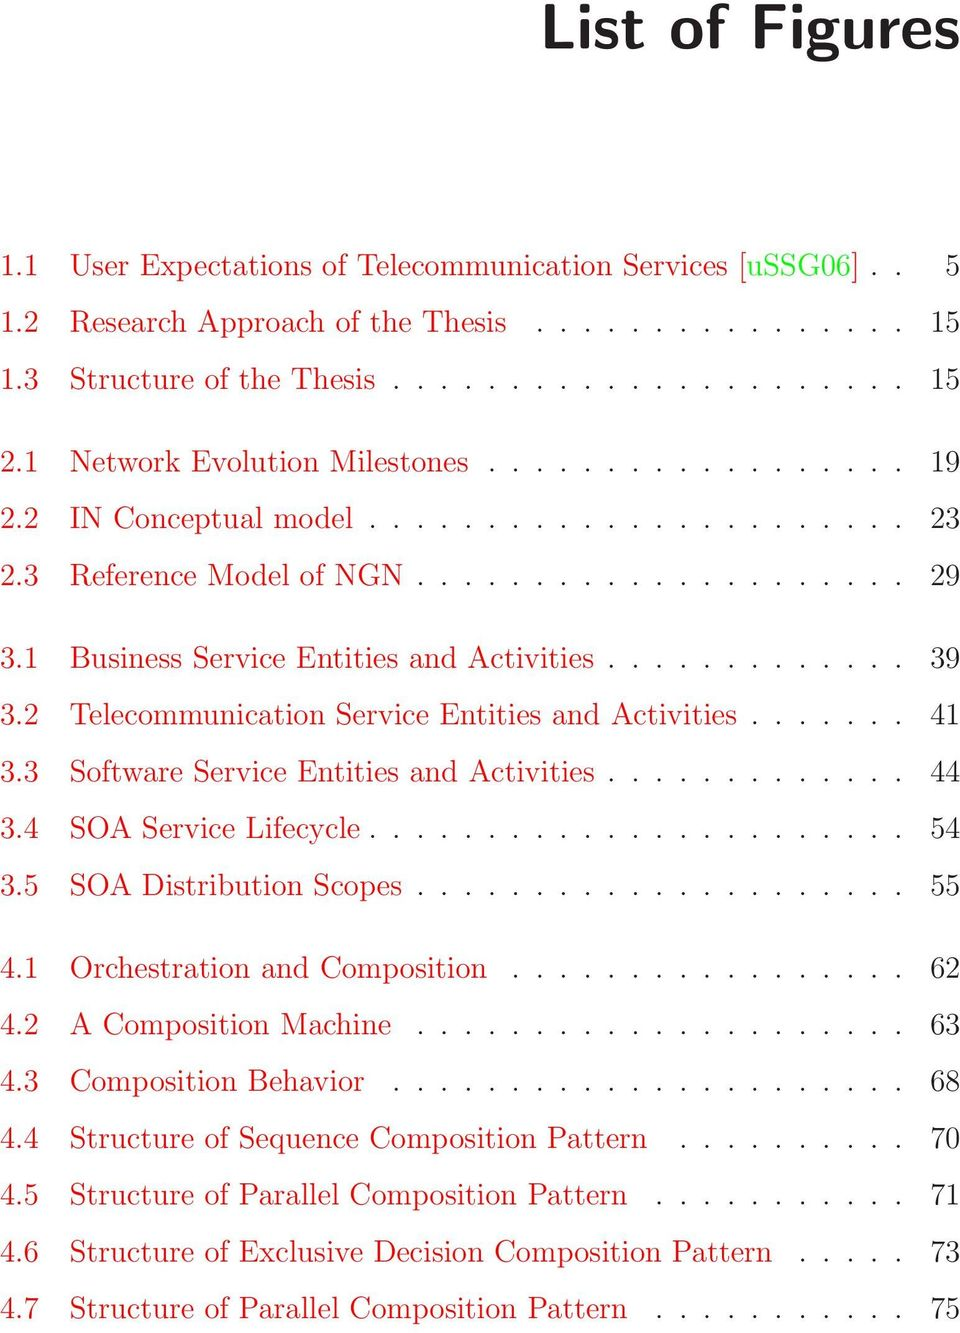 ............ 39 3.2 Telecommunication Service Entities and Activities....... 41 3.3 Software Service Entities and Activities............. 44 3.4 SOA Service Lifecycle....................... 54 3.